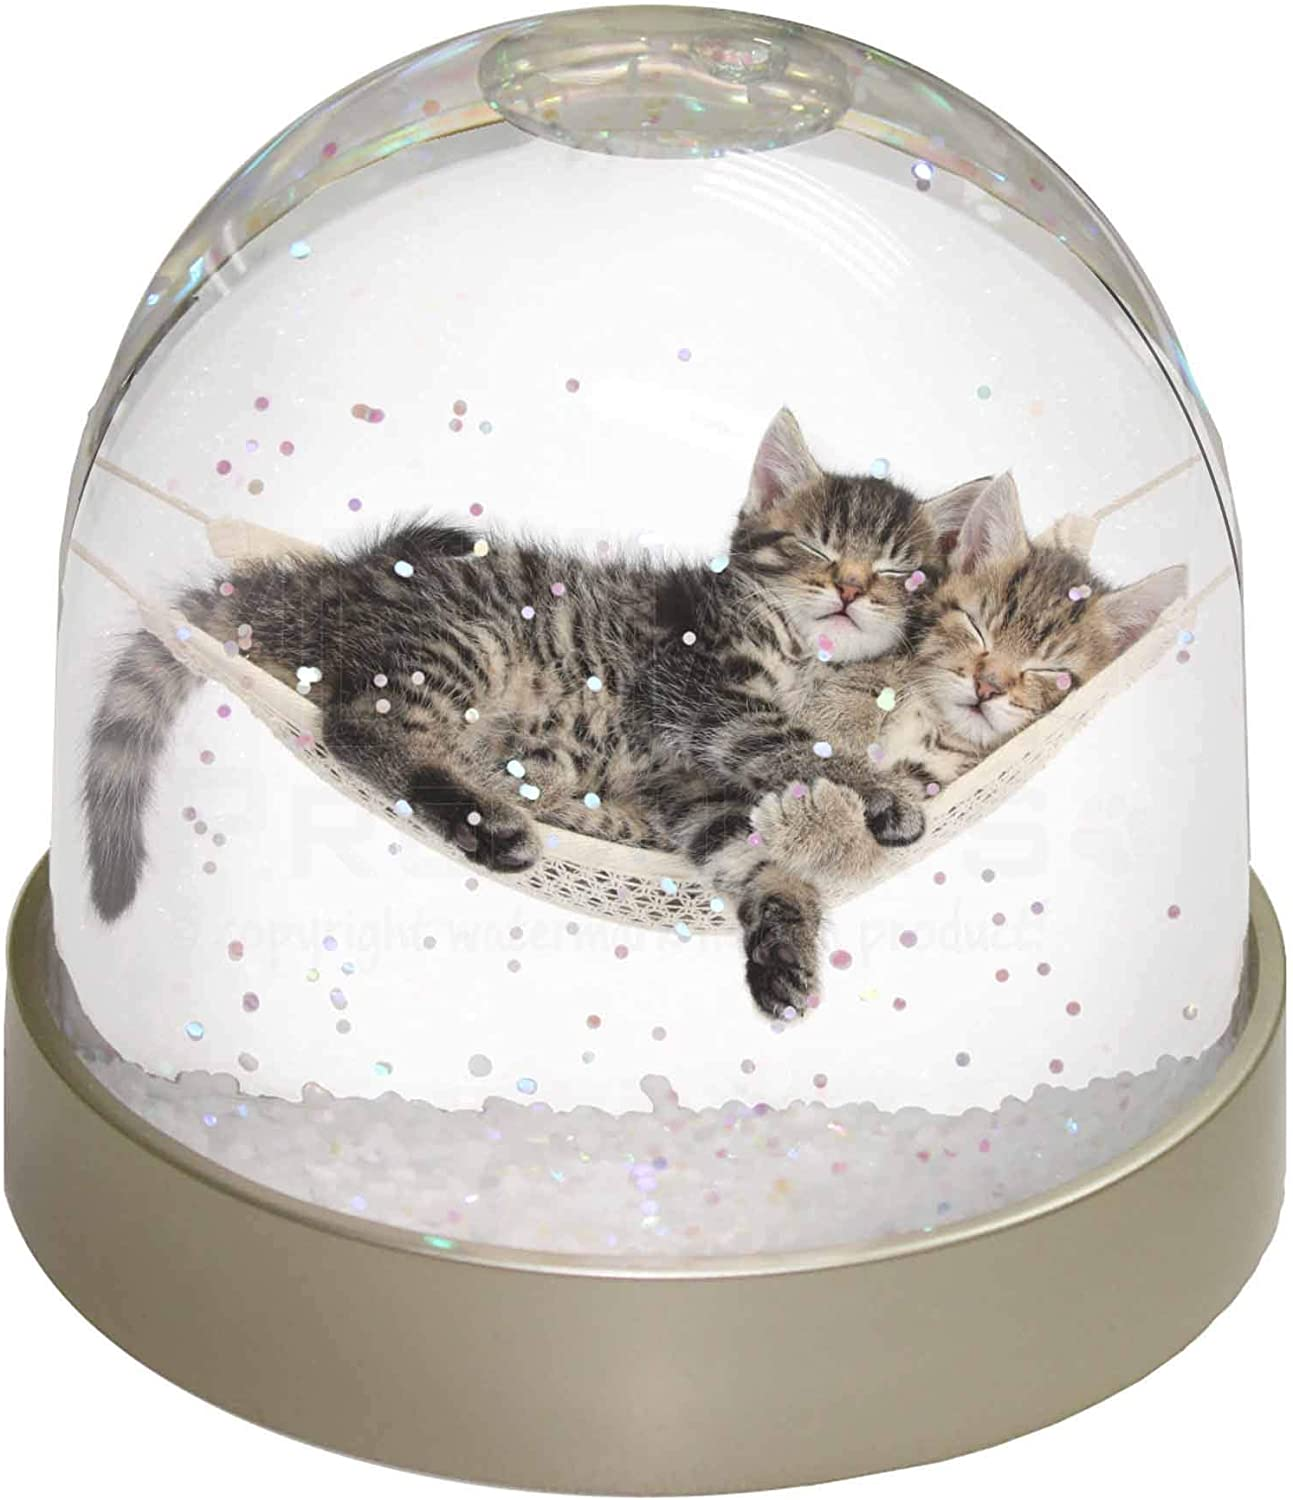 Two Kittens in Hammock Photo Snow Globe Waterball Stocking Filler Gift AC-206GL